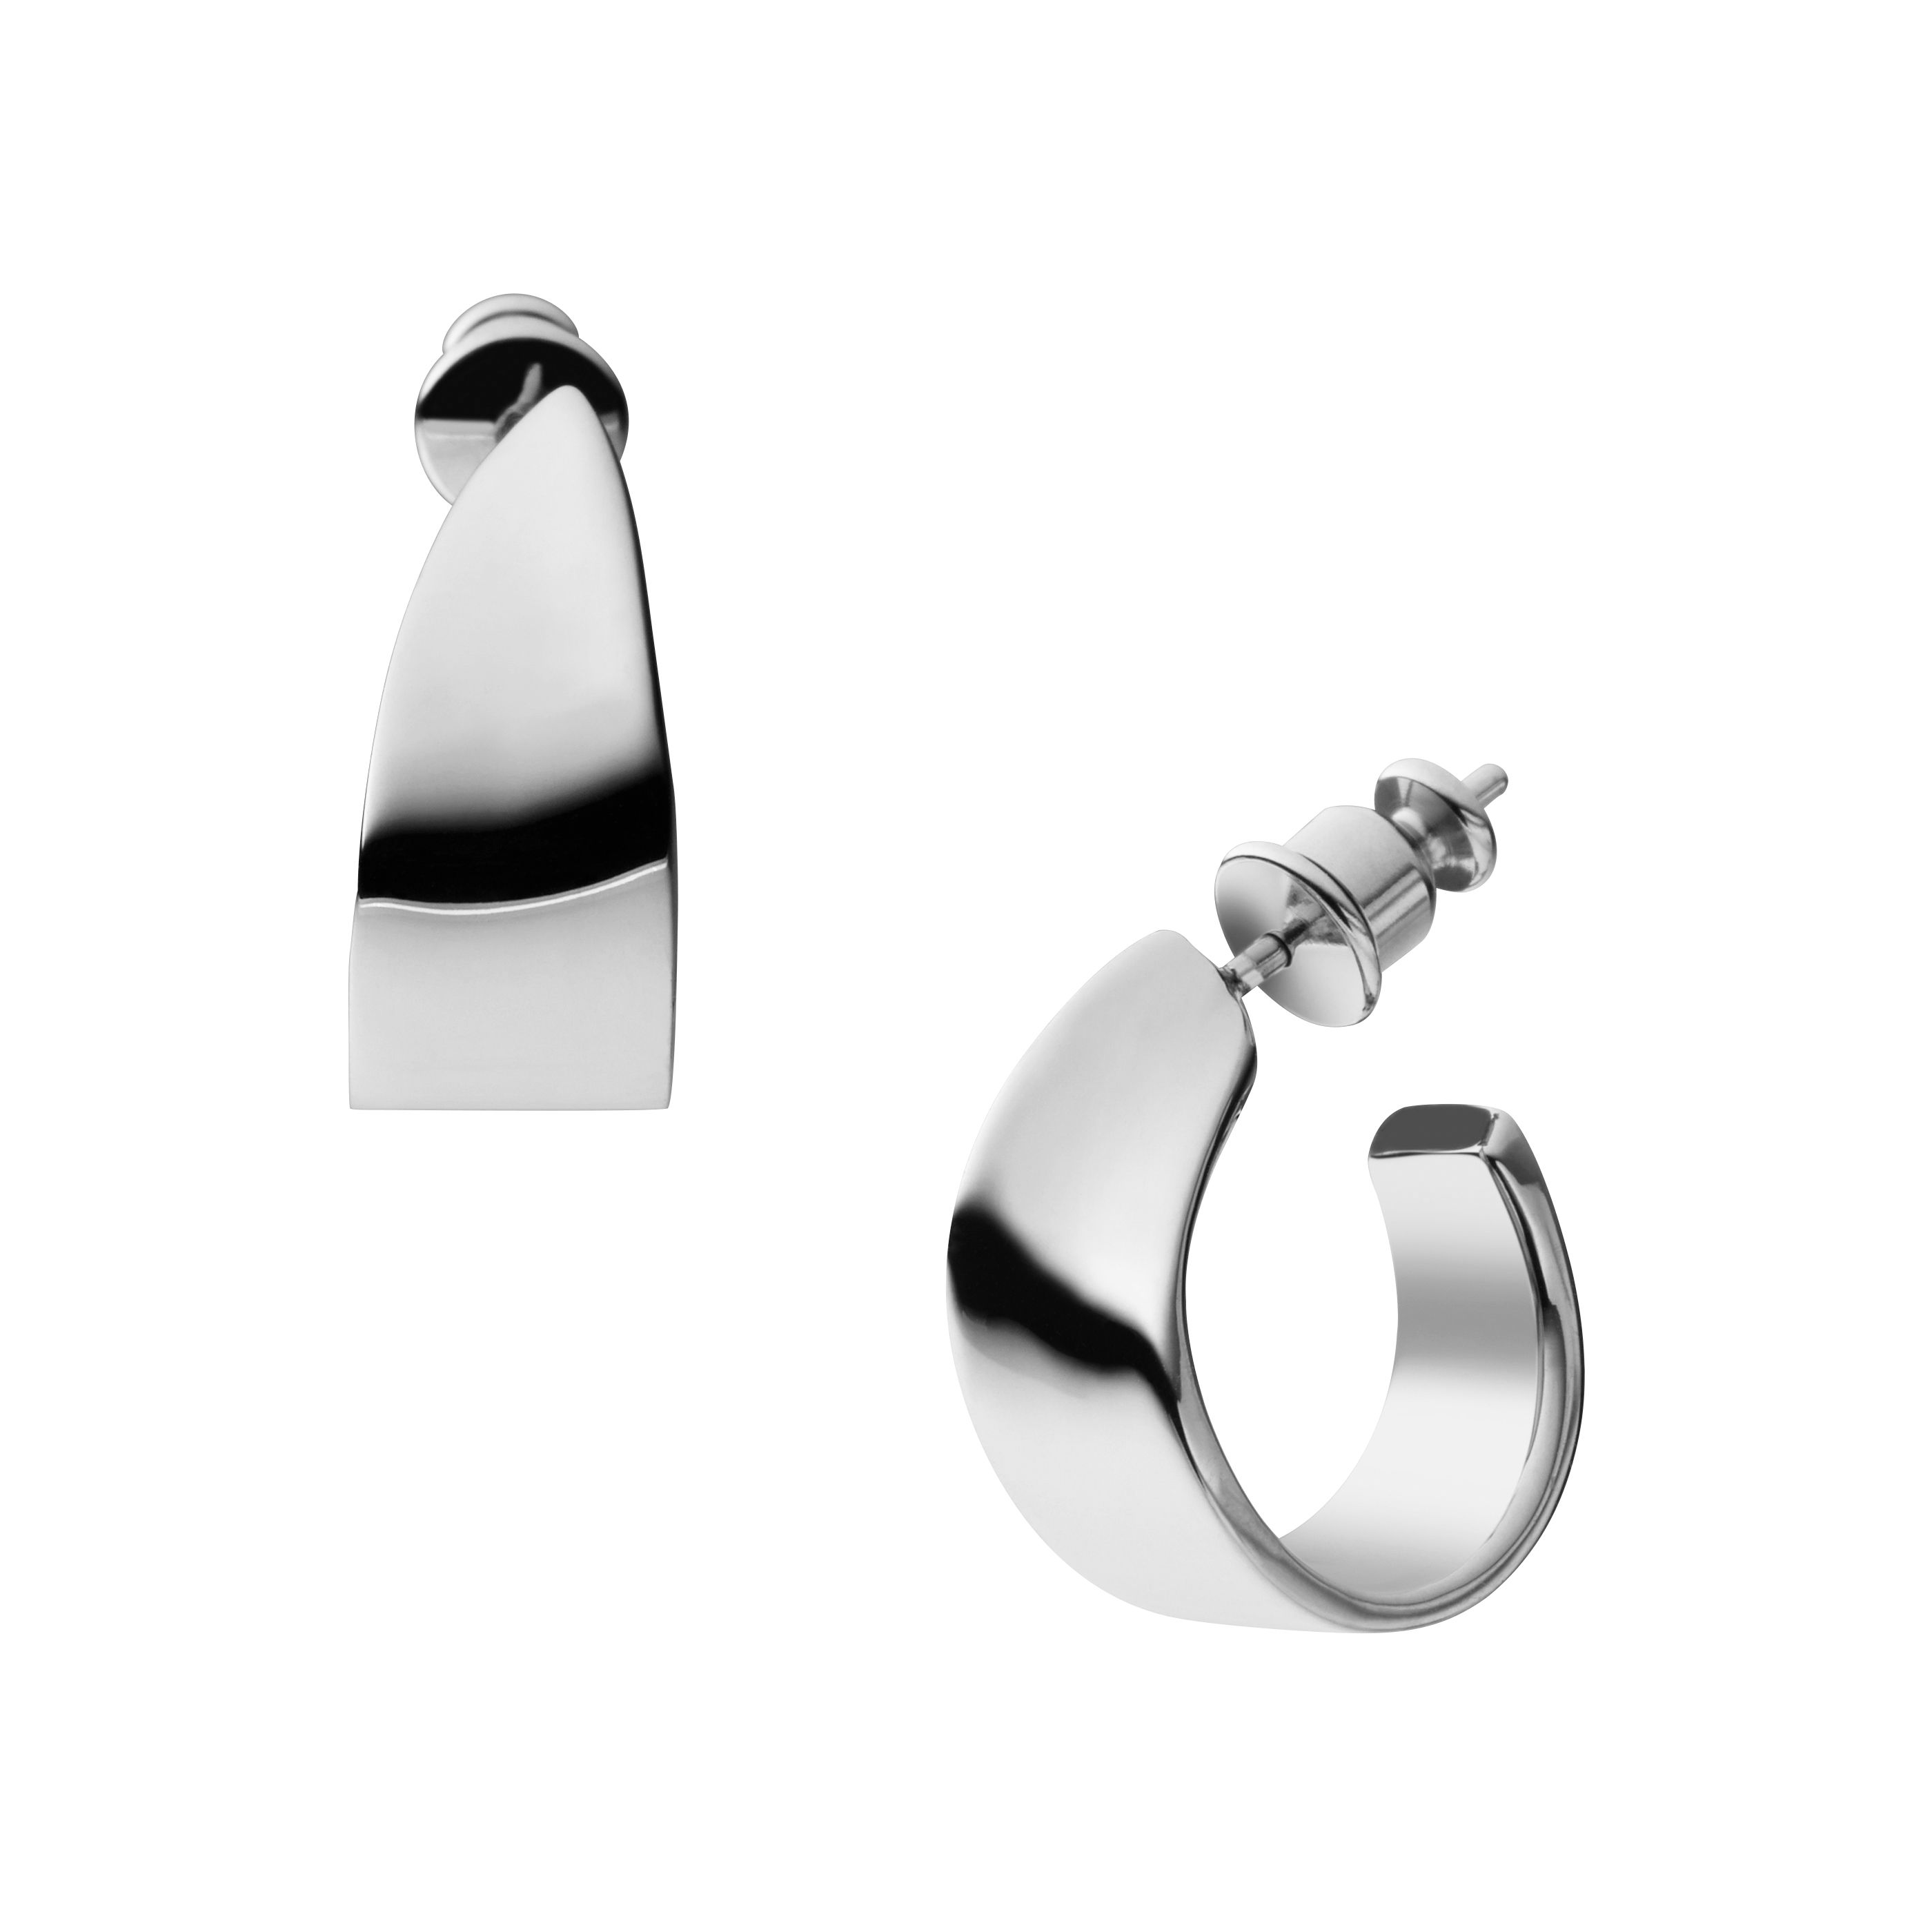 Classic silver stainless steel earrings